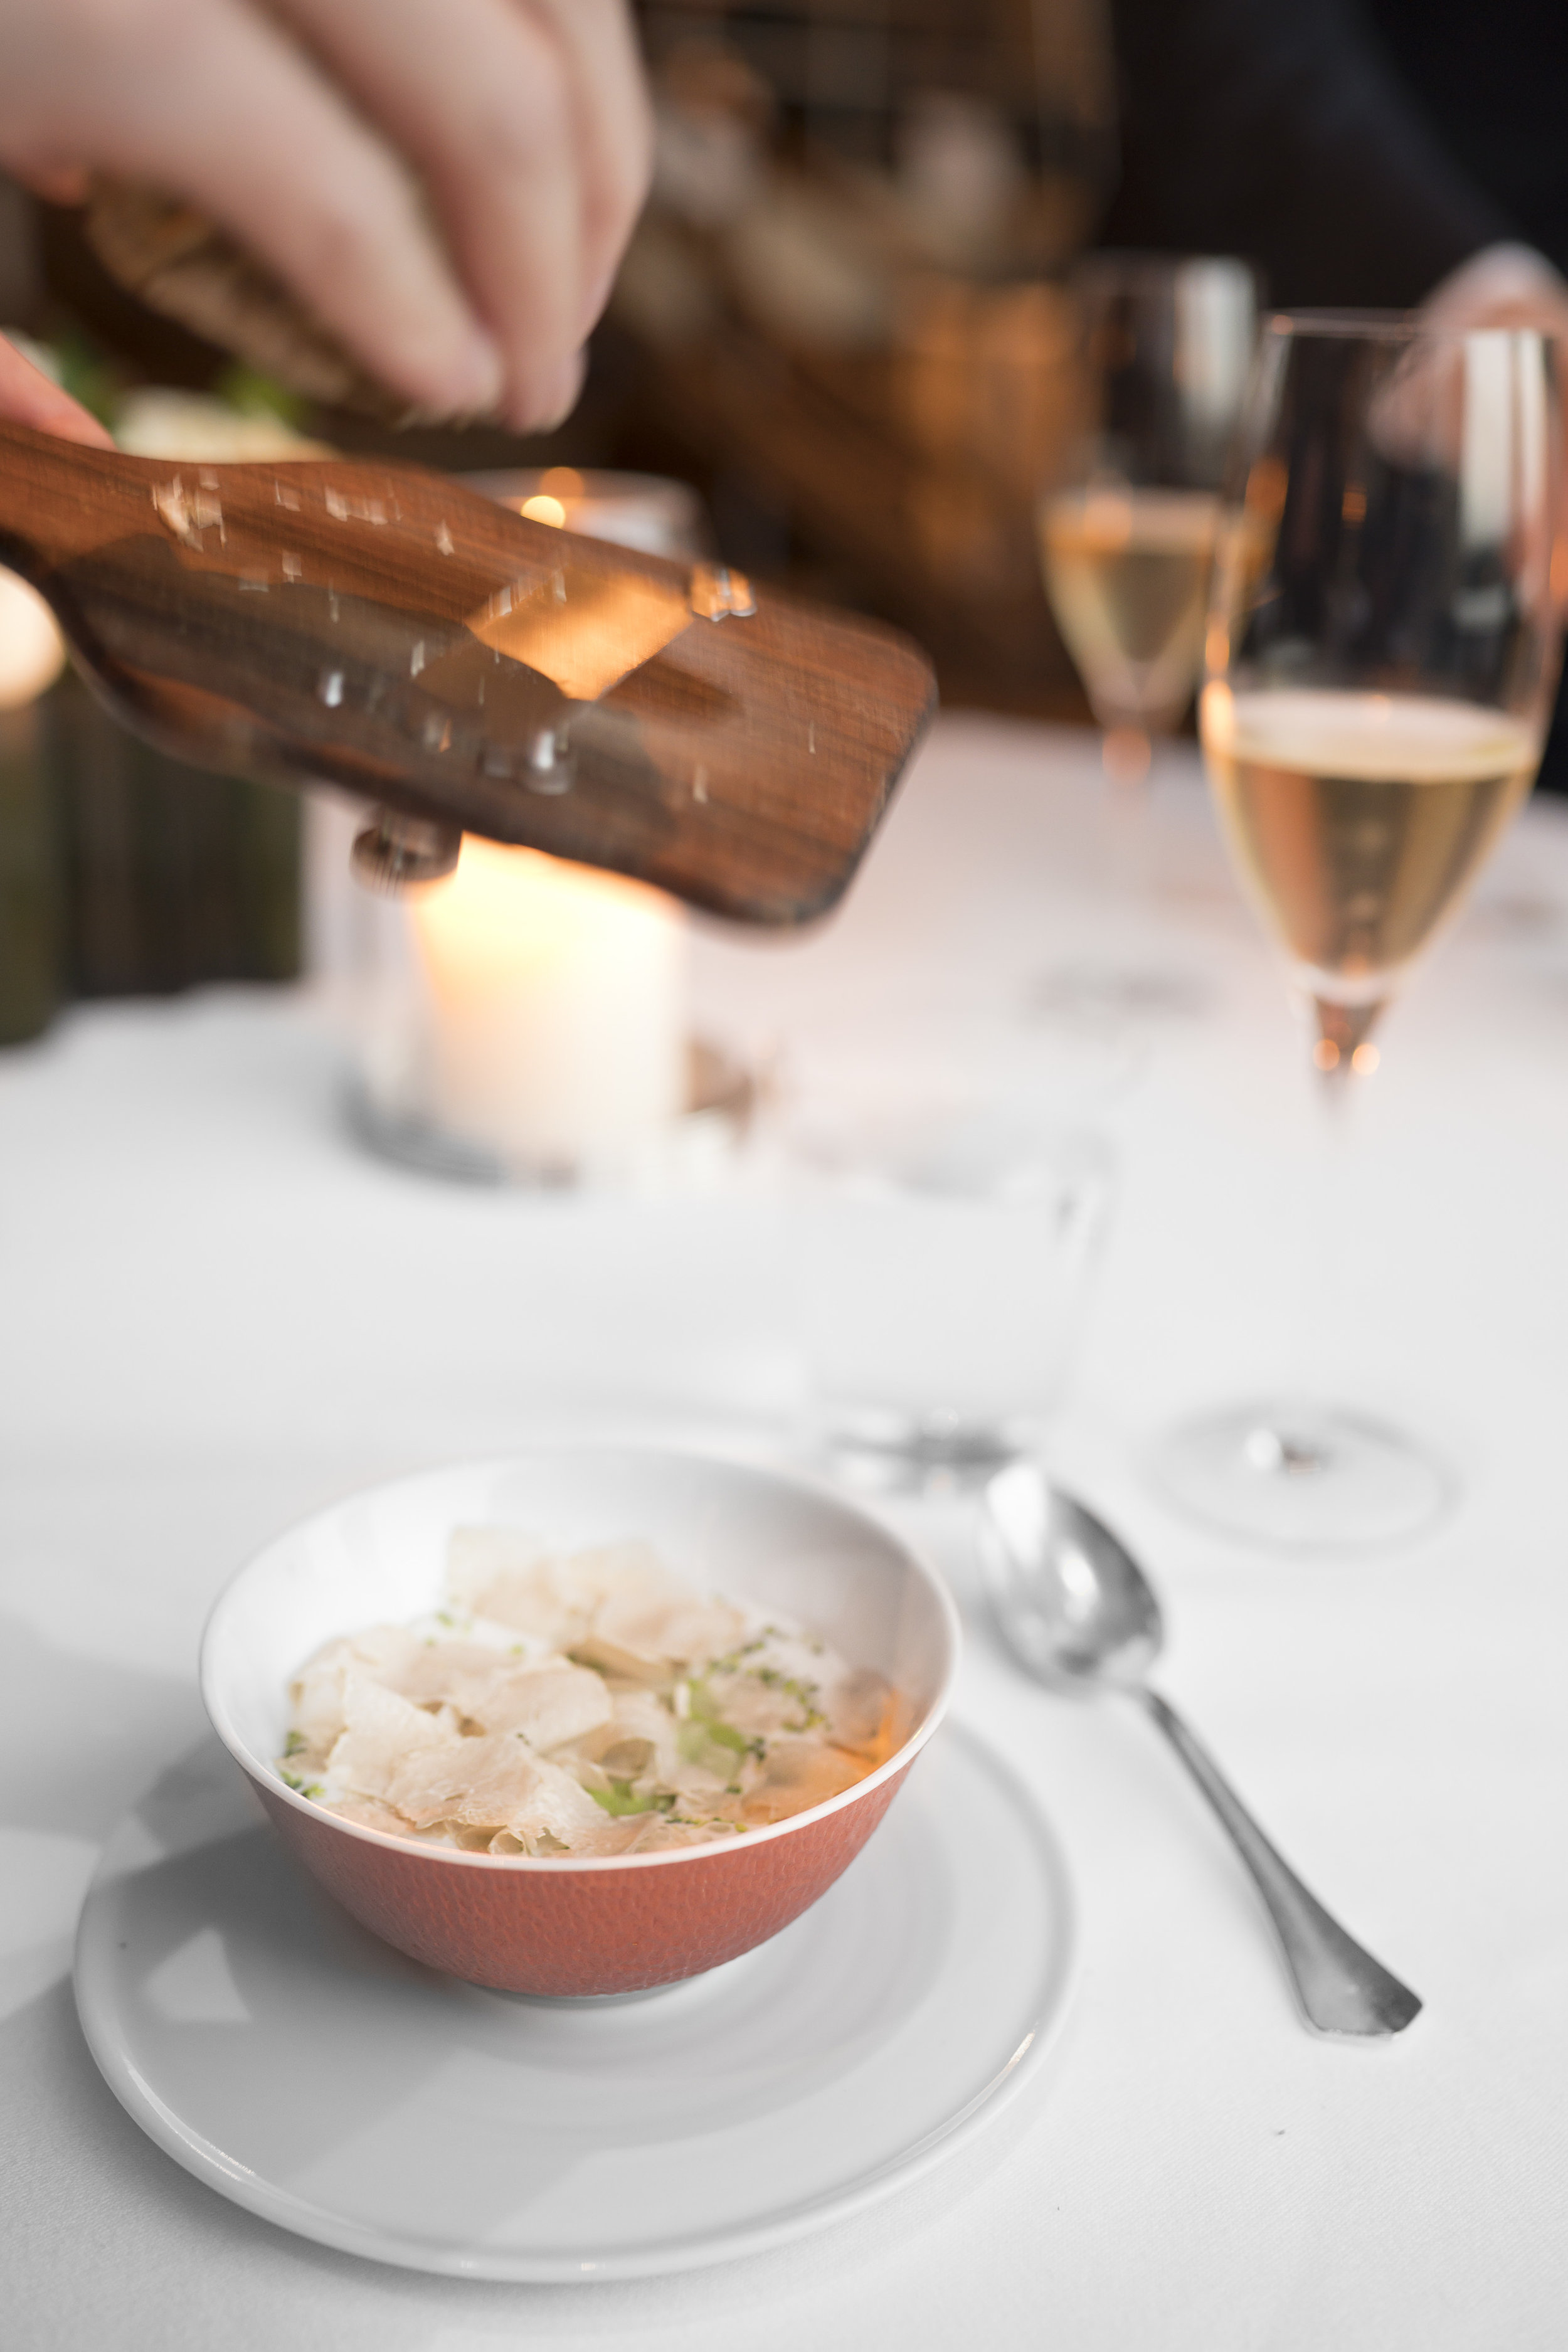 """Cream of Broccoli Soup. """"Pain de Campagne Croutons."""" Piedmont Hazelnuts and Shaved White Truffles from Alba"""